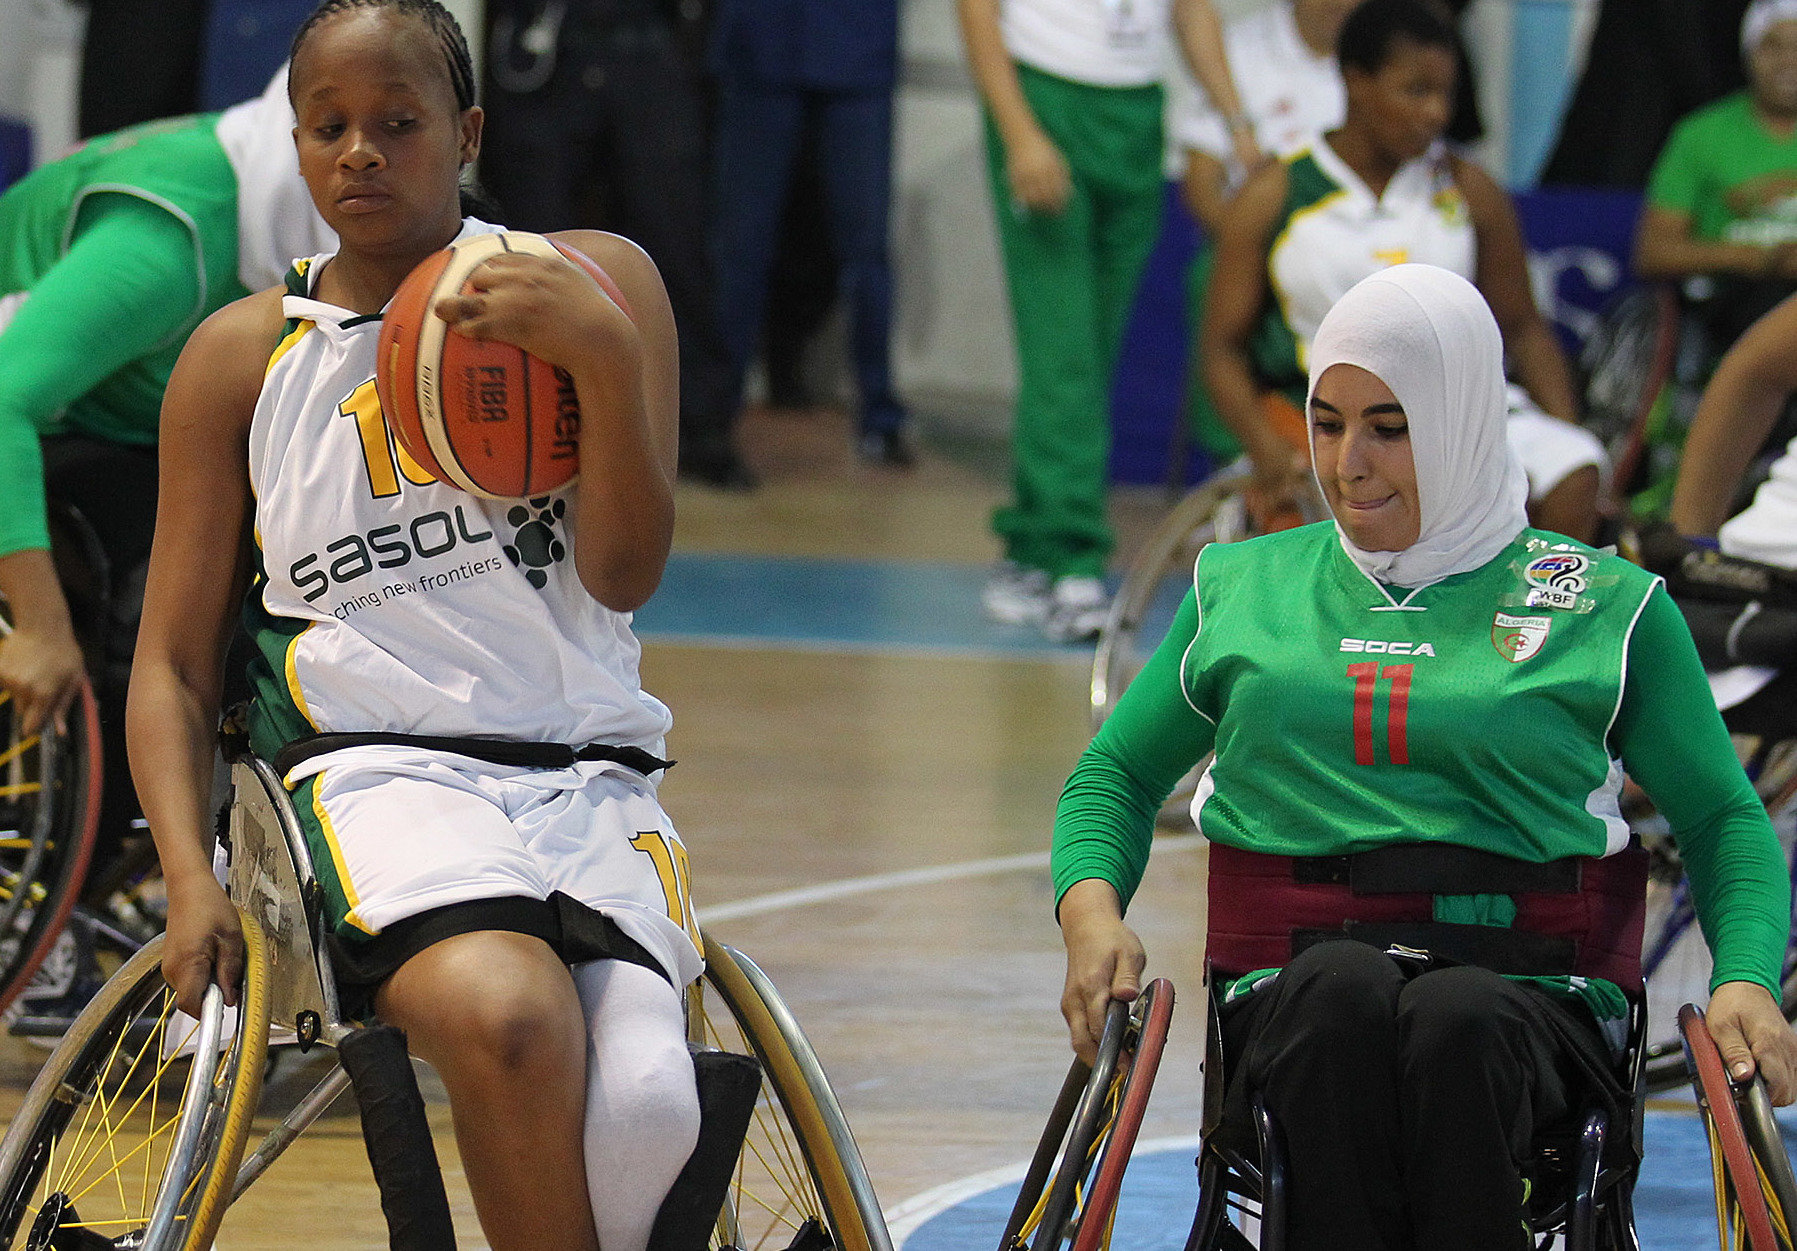 Amawheelagirls go down to Algeria in final